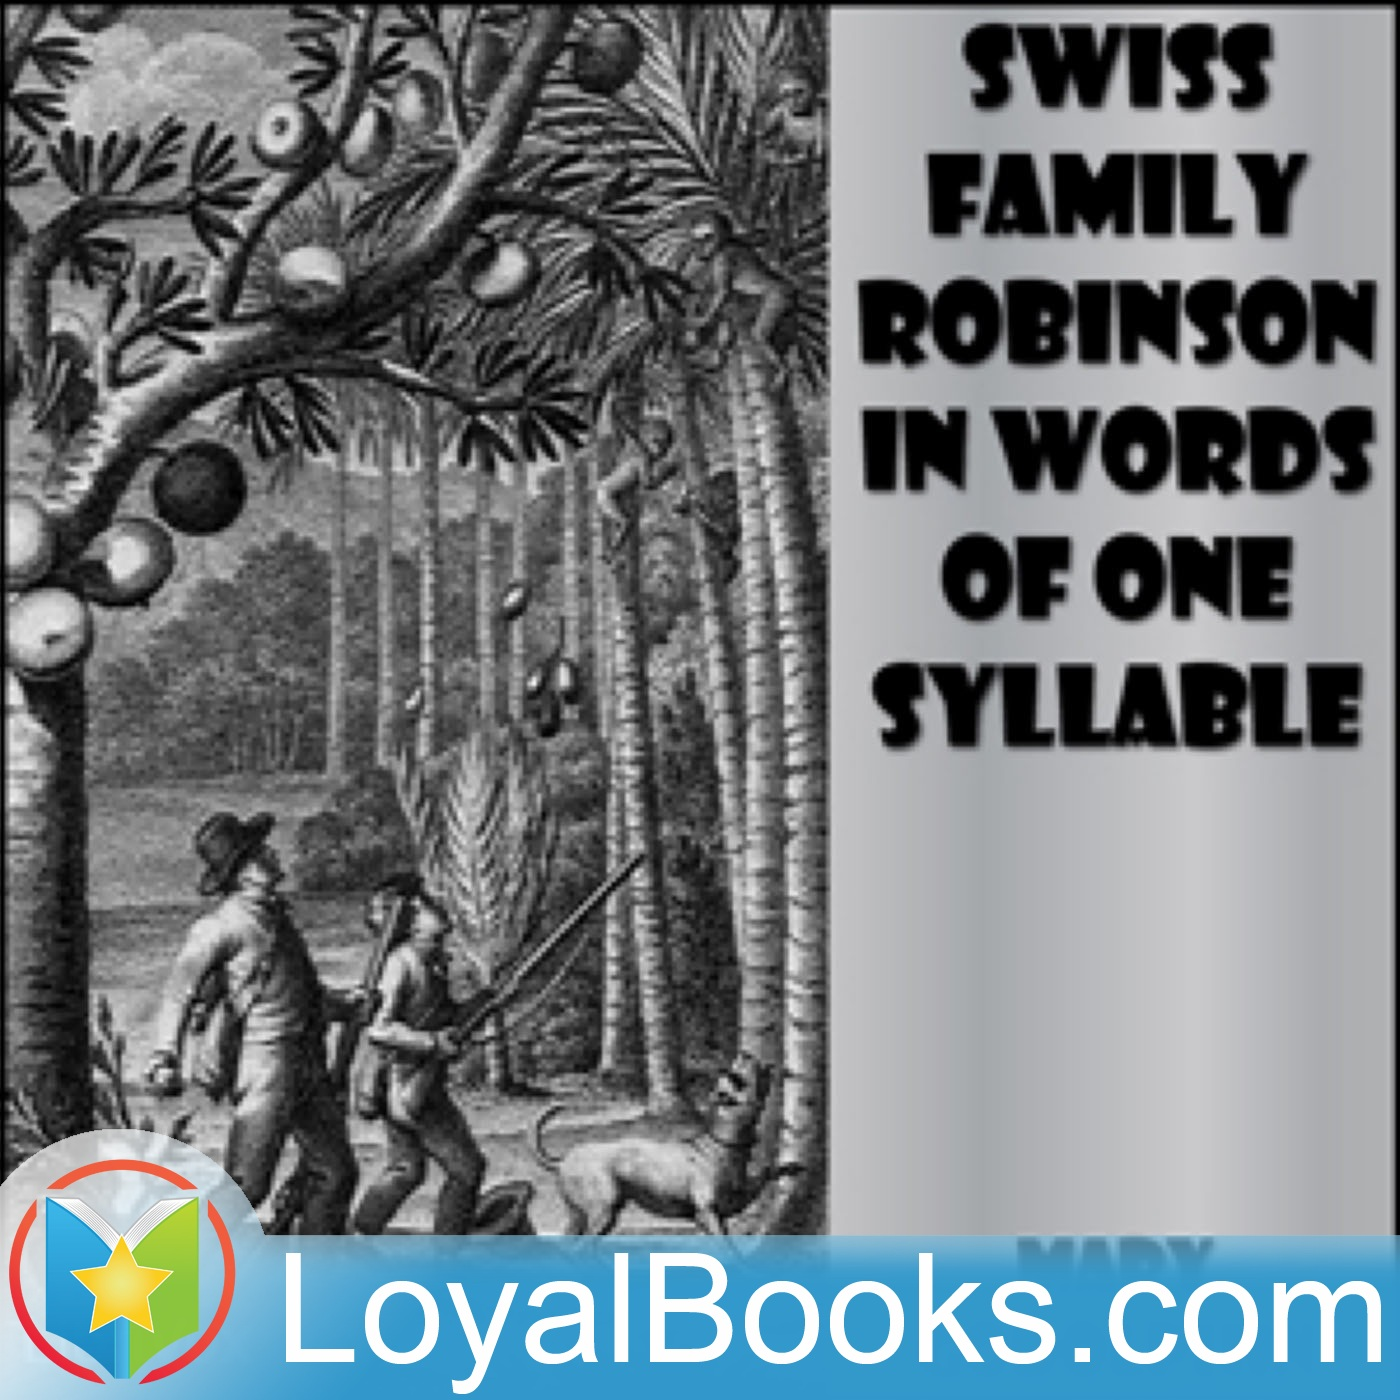 swiss family robinson in words of one syllable by lucy aikin